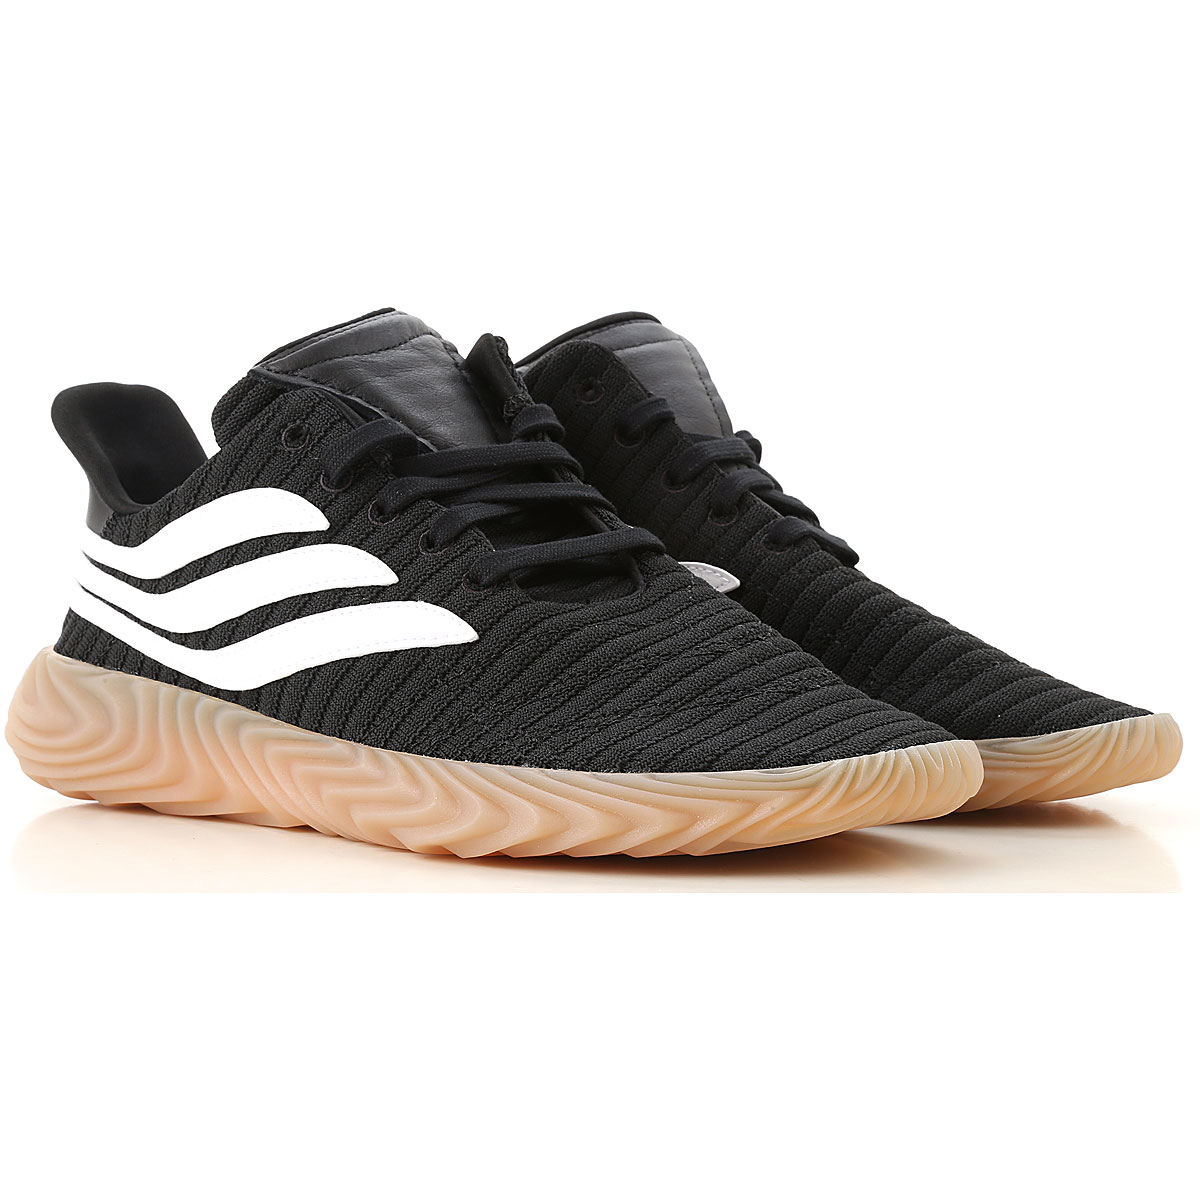 Image of Adidas Sneakers for Men, Black, Fabric, 2017, US 7 - UK 6 - EUR 40 US 7.5 - UK 7 - EU 40.5 US 7 - UK 6.5 - EU 40 US 10.5 - UK 10 - EU 44.5 US 11.5 - UK 11 - EU 45.5 US 8 1/2 - UK 8 - EU 42 US 9.5 - UK 9 - EU 43 US 10 - UK 9 1/2 - EU 44